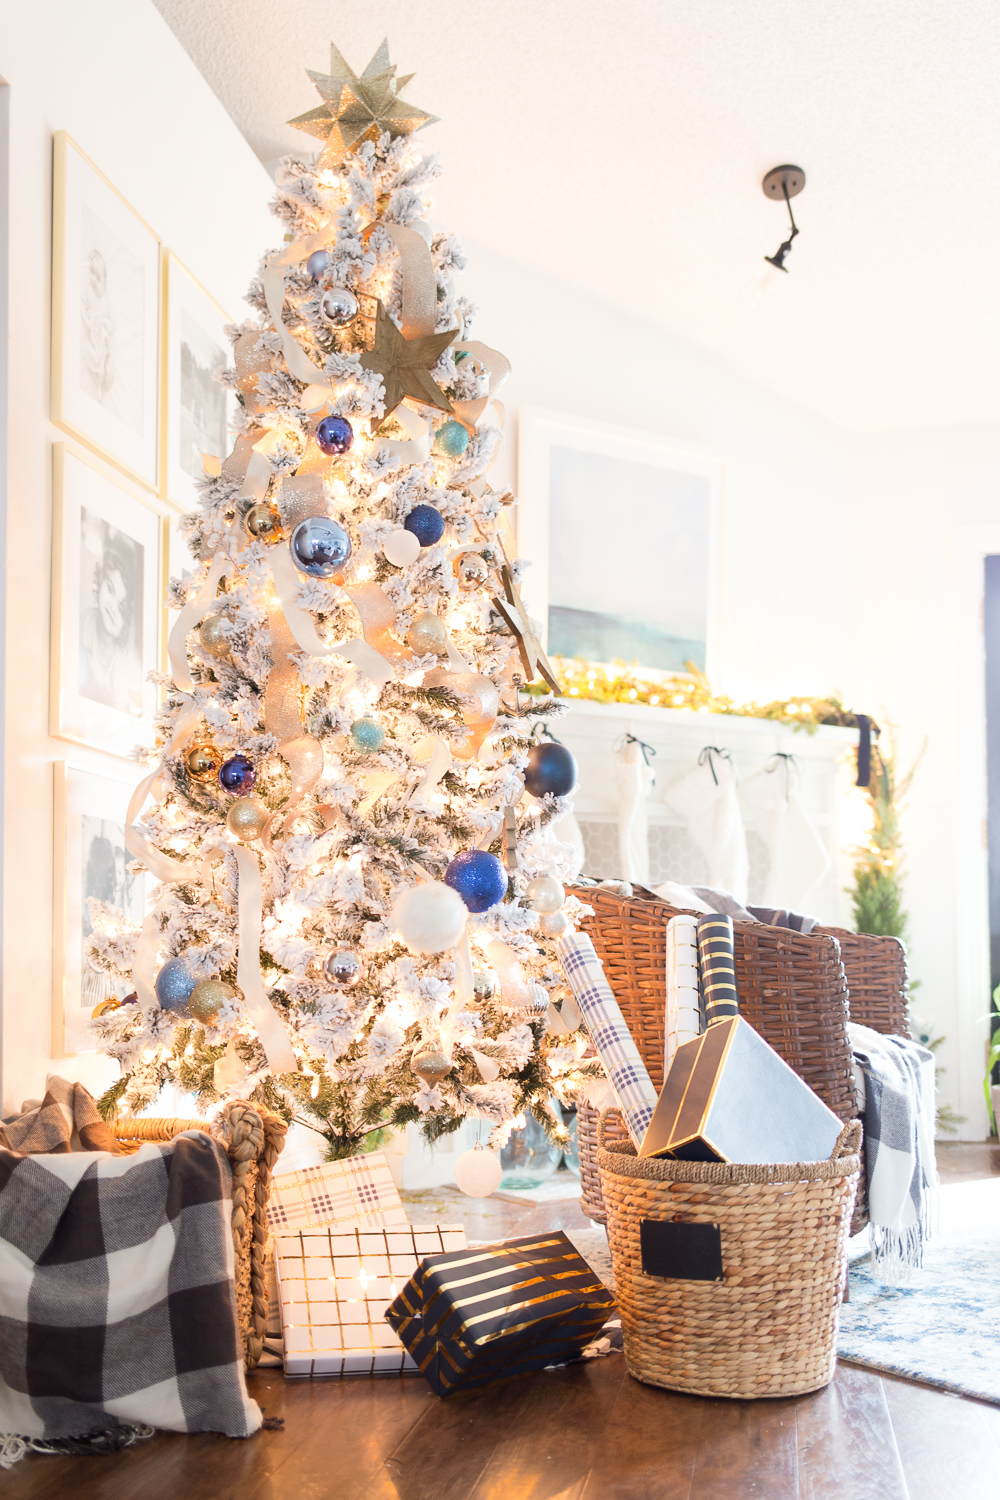 Glowing white Christmas tree with blue ornaments and white and gold garland next to the fireplace